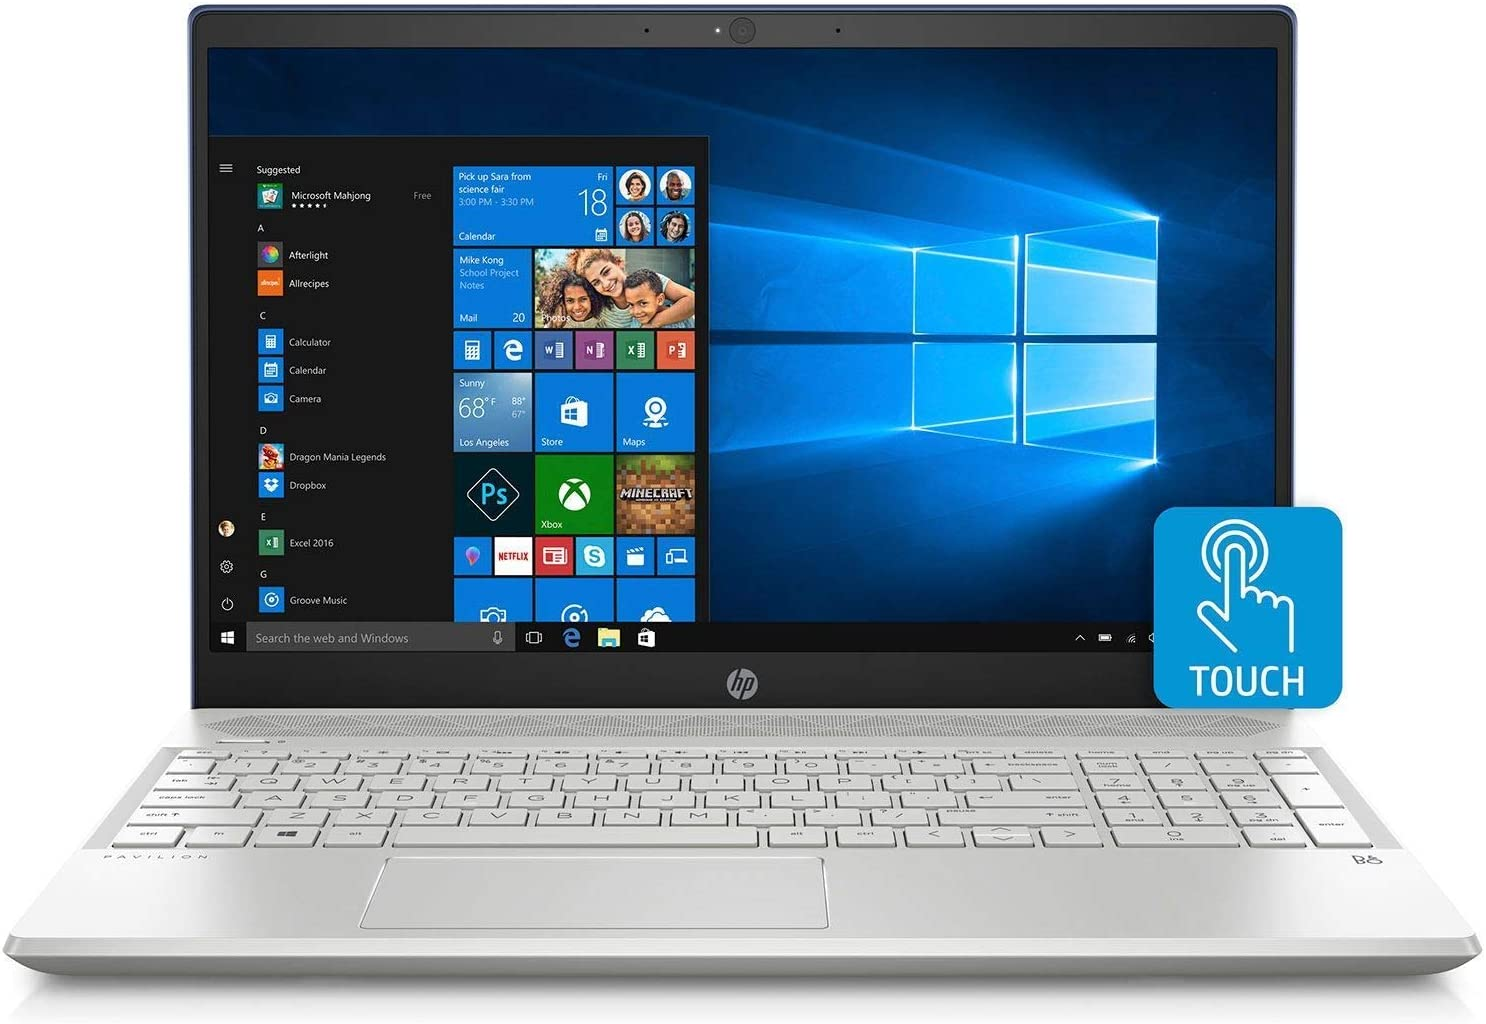 "HP Pavilion 15.6"" FHD IPS Touchscreen Premium Laptop, Intel Quad Core i7-8550U Processor up to 4.0 GHz, 16GB Memory, 512GB SSD, 500GB HDD, Backlit Keyboard, USB-C, B&O Play, WiFi, HDMI, Windows 10"